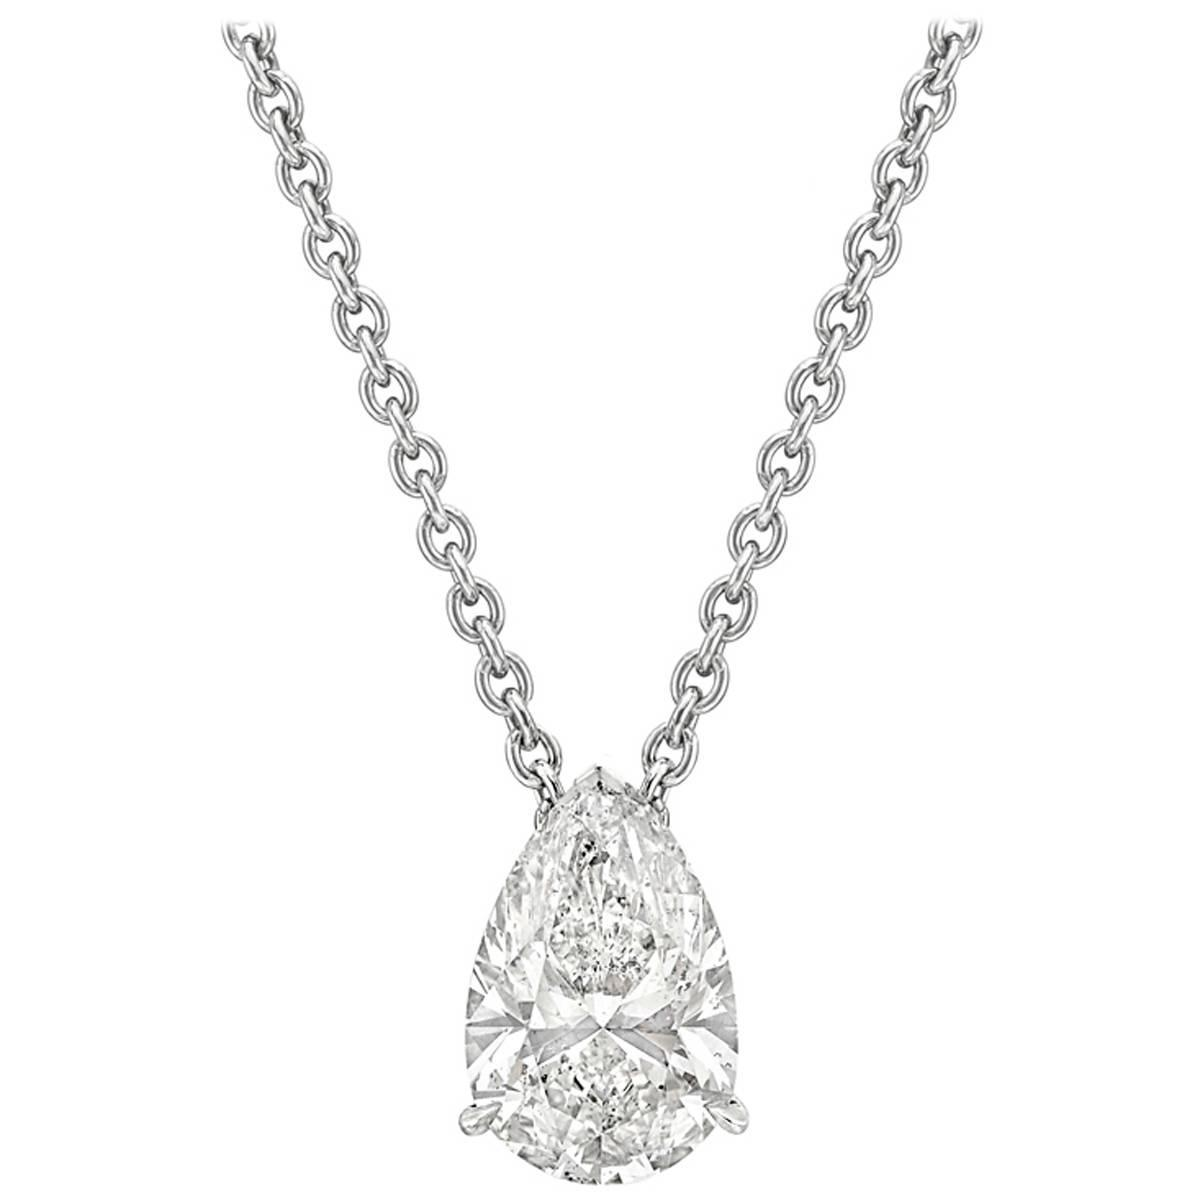 clarity certifie necklace egl solitaire gold pear diamond white pendant i shaped